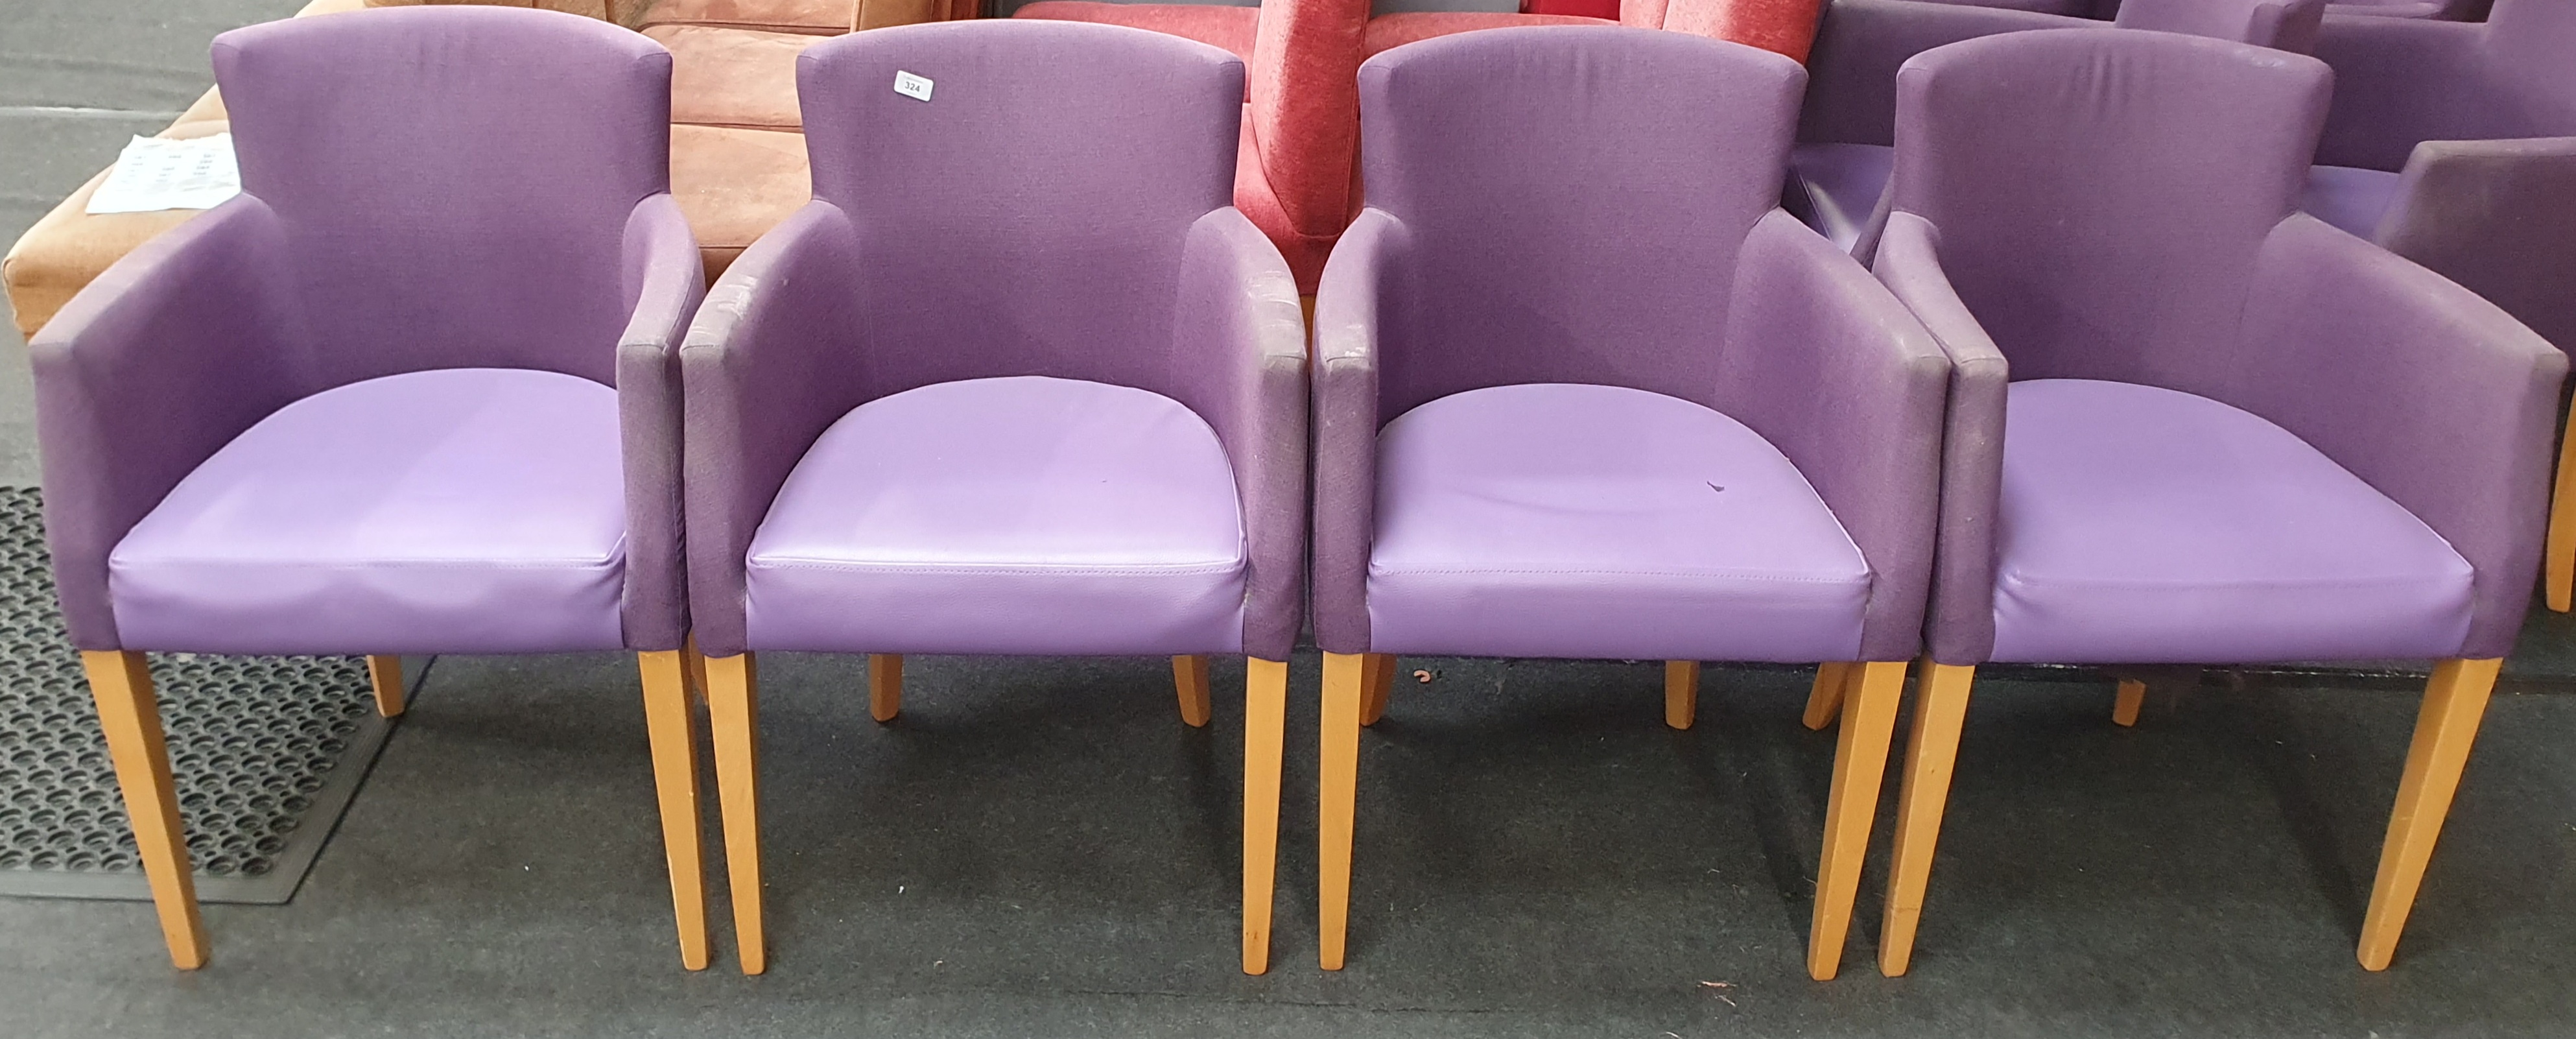 From a hotel clearance: Four lobby chairs in purple.